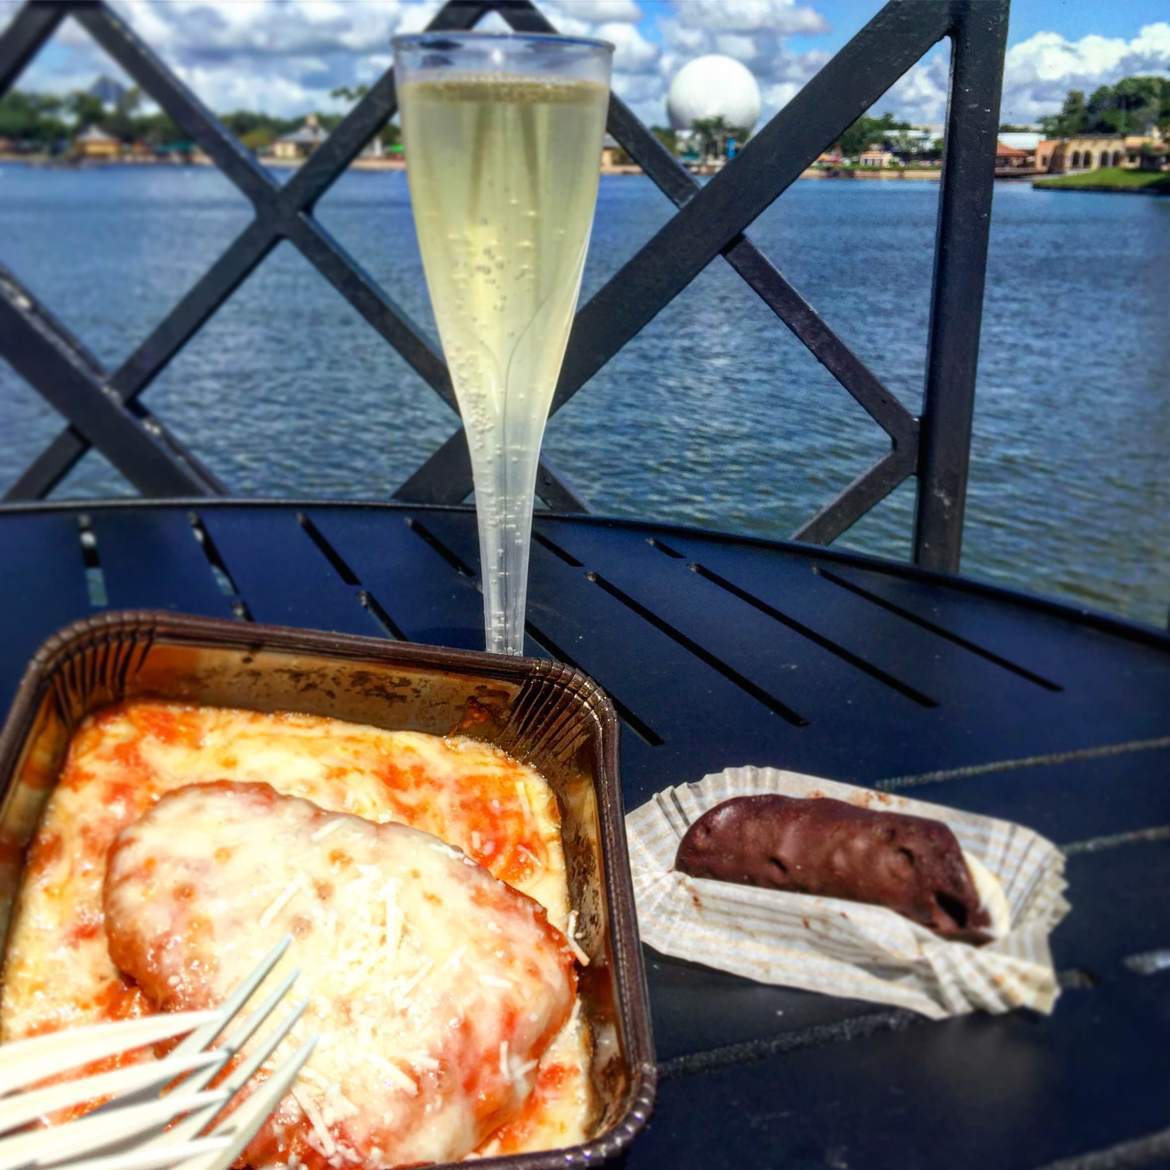 Sip and Stroll through Italy: Food and Wine Fest EXCLUSIVES Plus a Via Napoli Pizza Recipe!